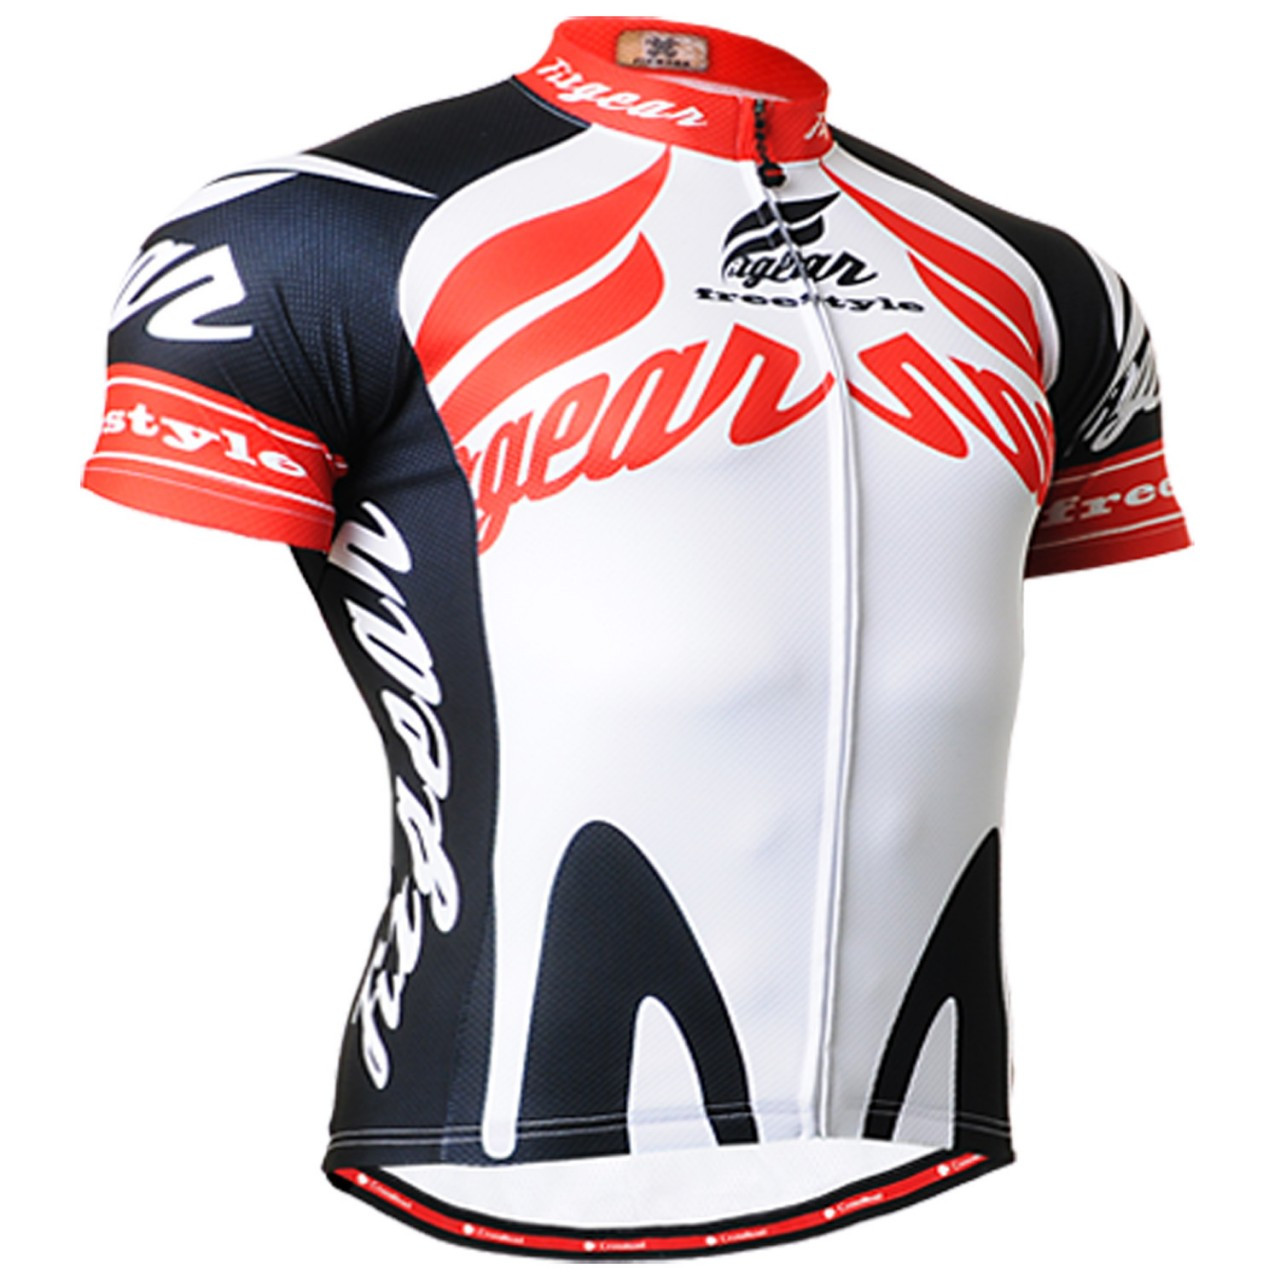 best cut best design for the best fit in any biking